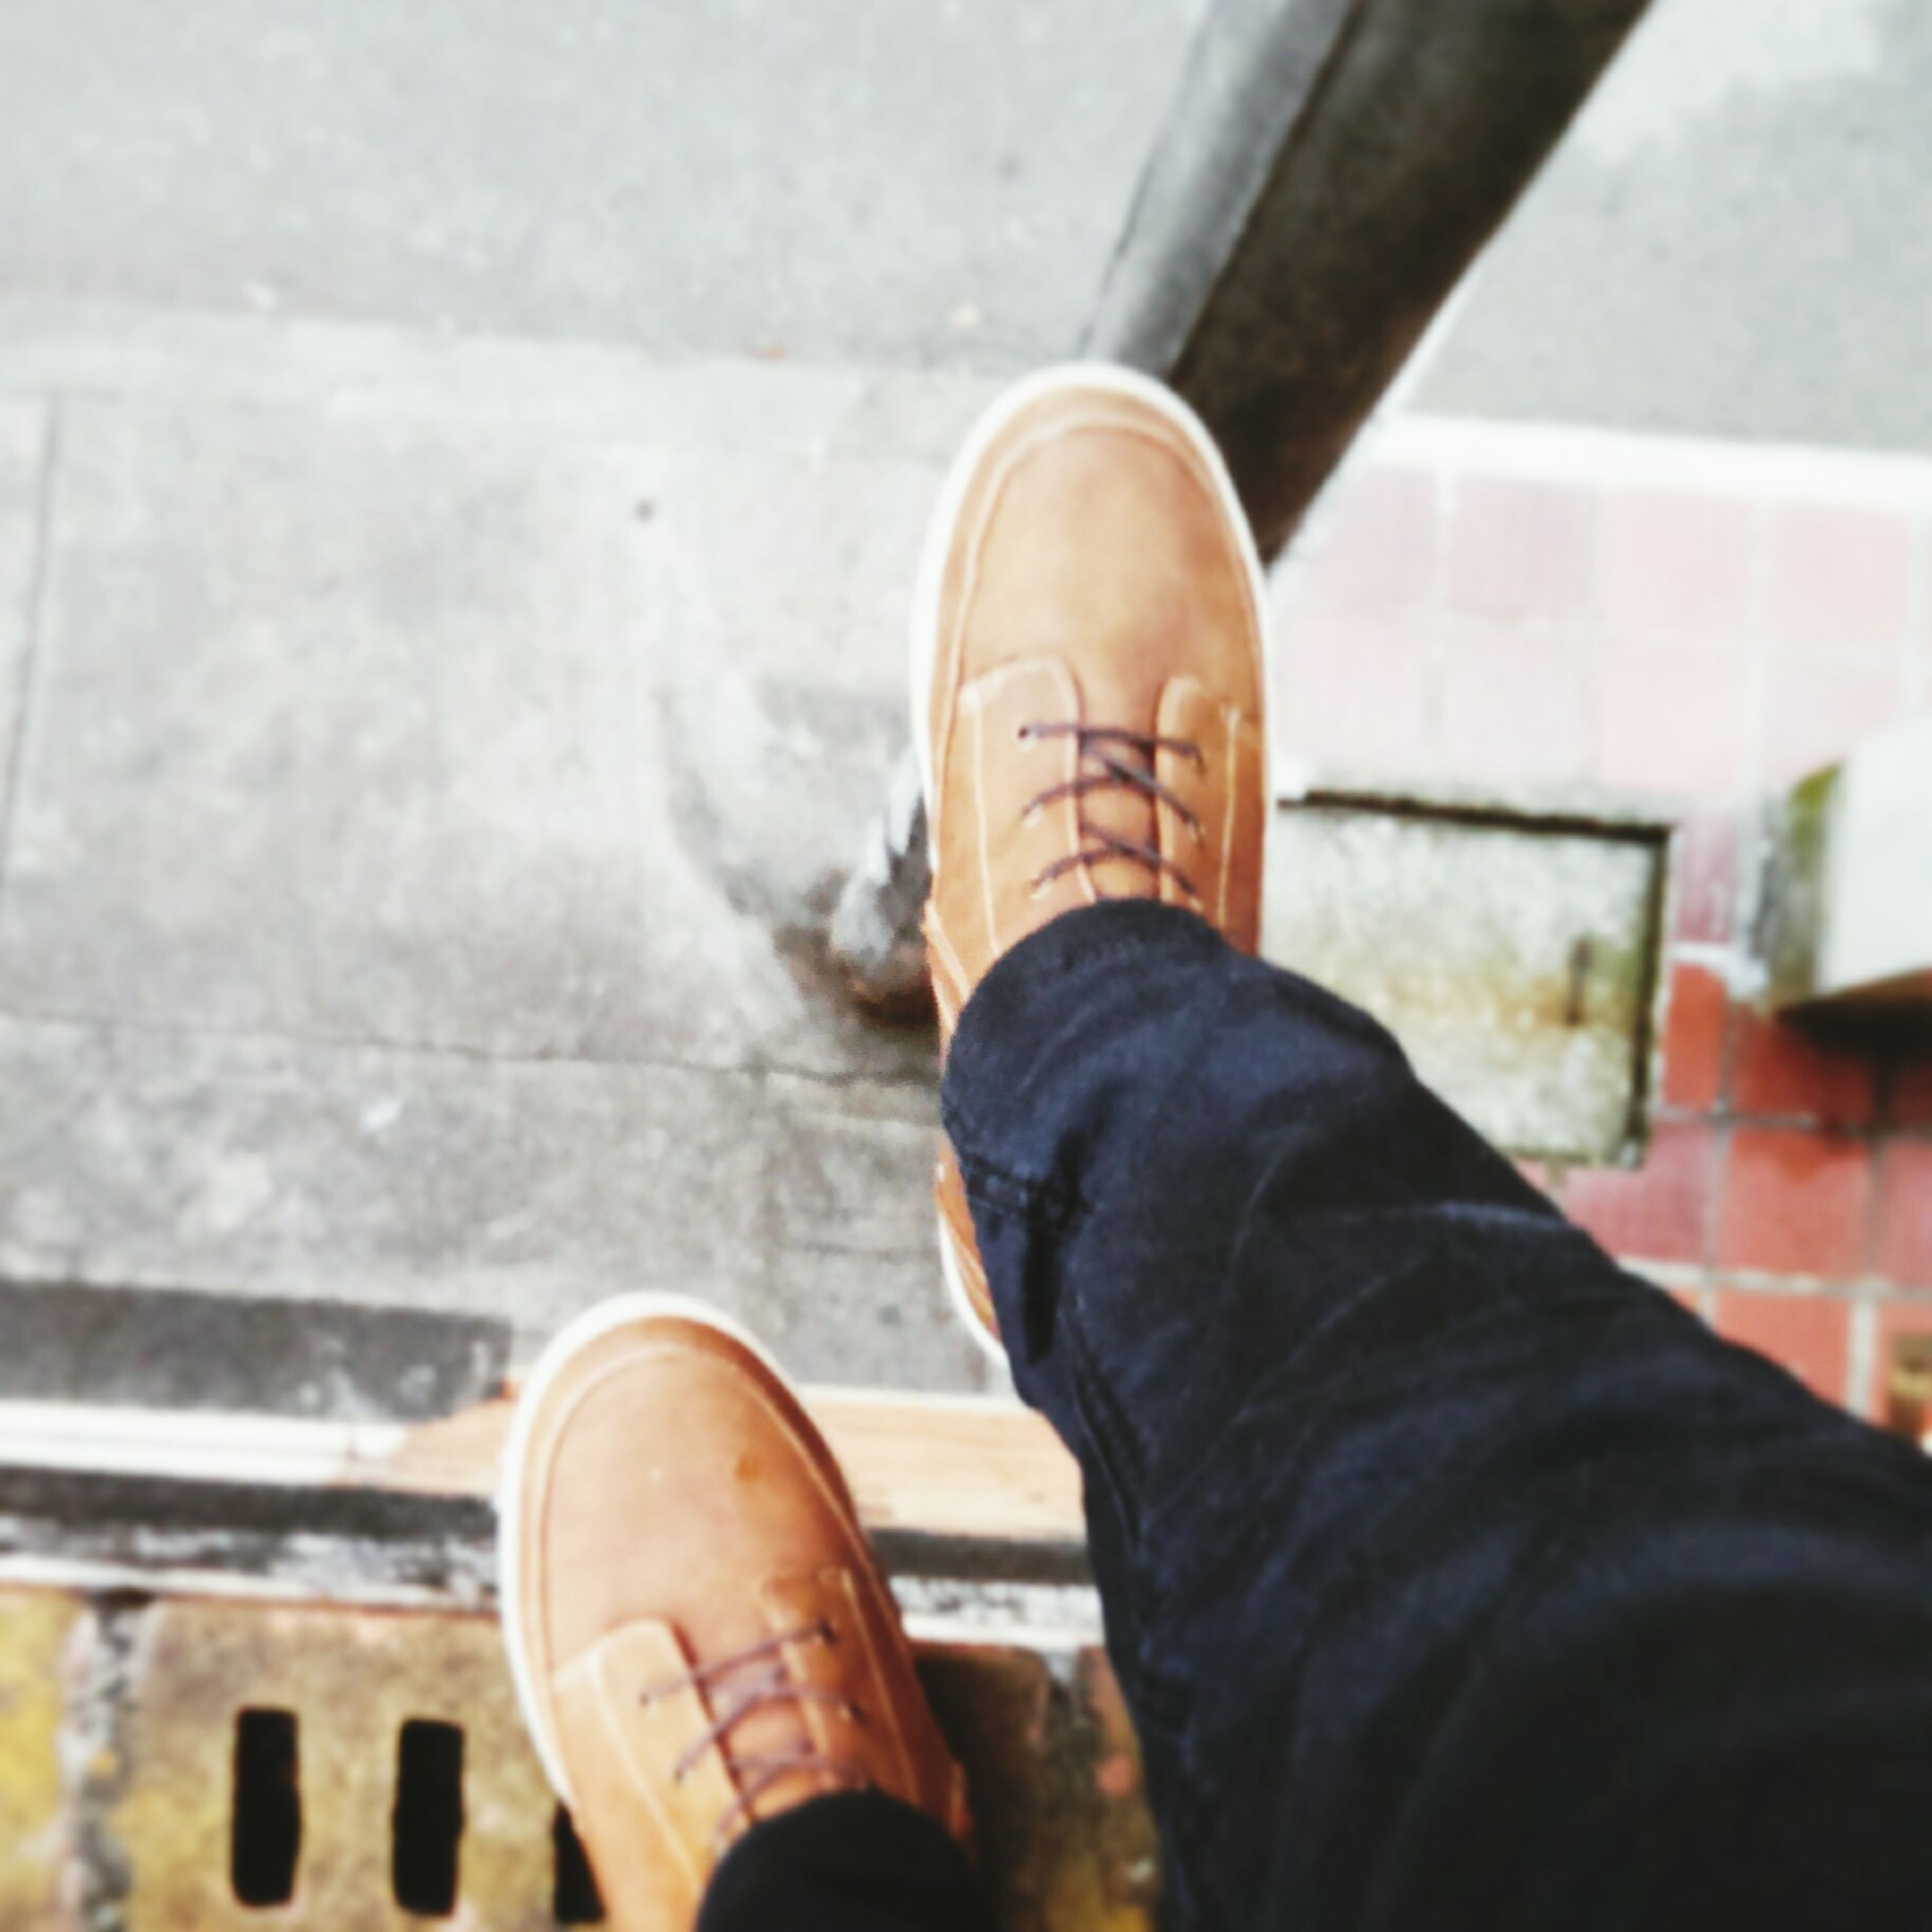 low section, person, personal perspective, shoe, human foot, lifestyles, part of, footwear, men, indoors, standing, unrecognizable person, leisure activity, high angle view, jeans, human limb